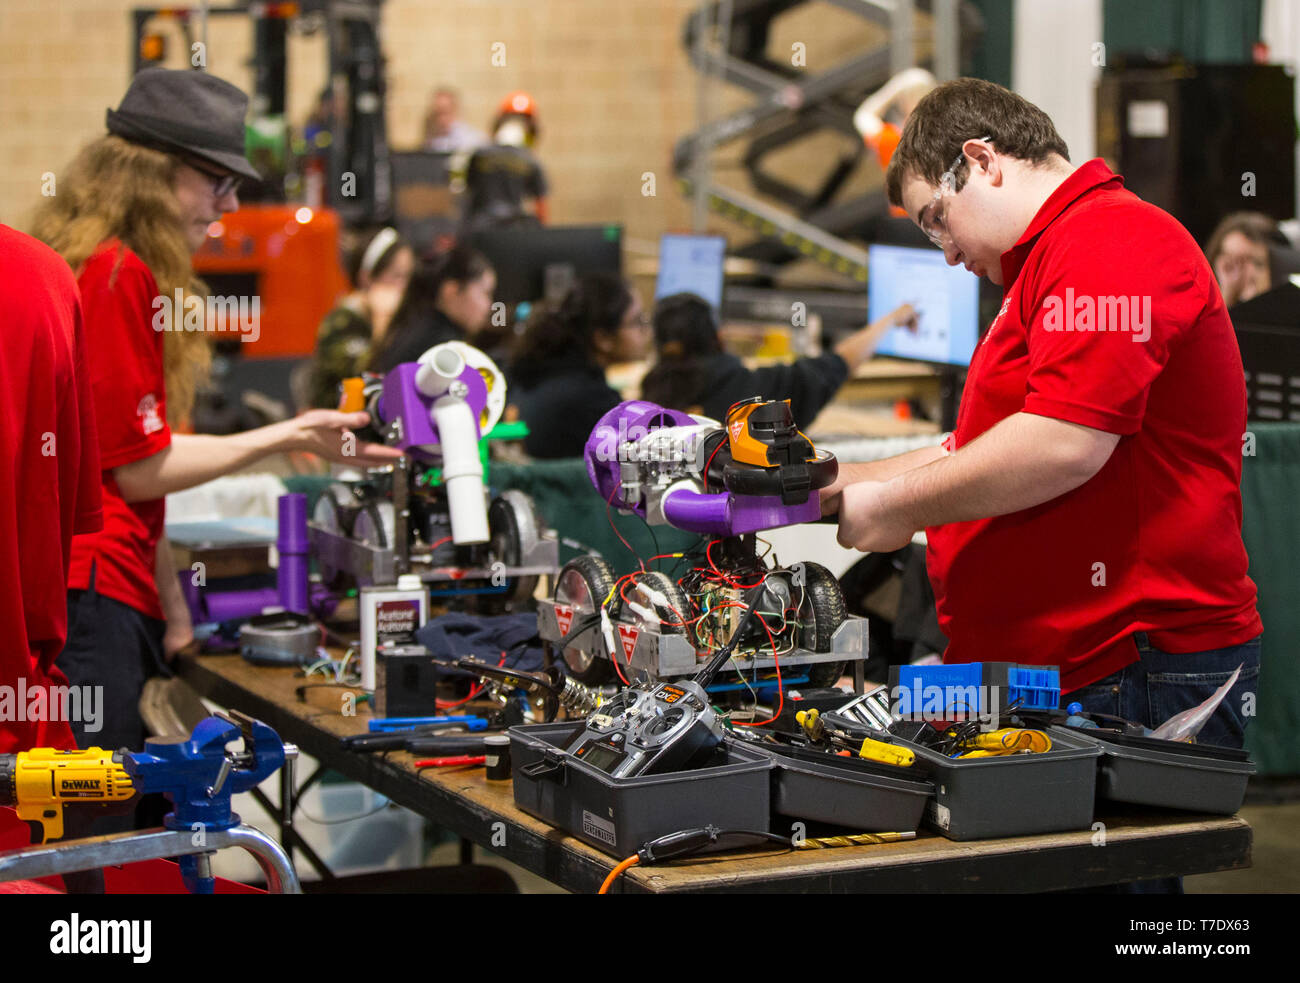 Toronto, Canada. 6th May, 2019. Students compete during the robotics challenge sector of the 2019 Skills Ontario Competition in Toronto, Canada, on May 6, 2019. The 2019 Skills Ontario Competition kicked off here on Monday, attracting more than 2,400 competitors. A broad range of skills and careers are represented at the three-day competition from across the manufacturing, transportation, construction, service, and technology sectors. Credit: Zou Zheng/Xinhua/Alamy Live News - Stock Image